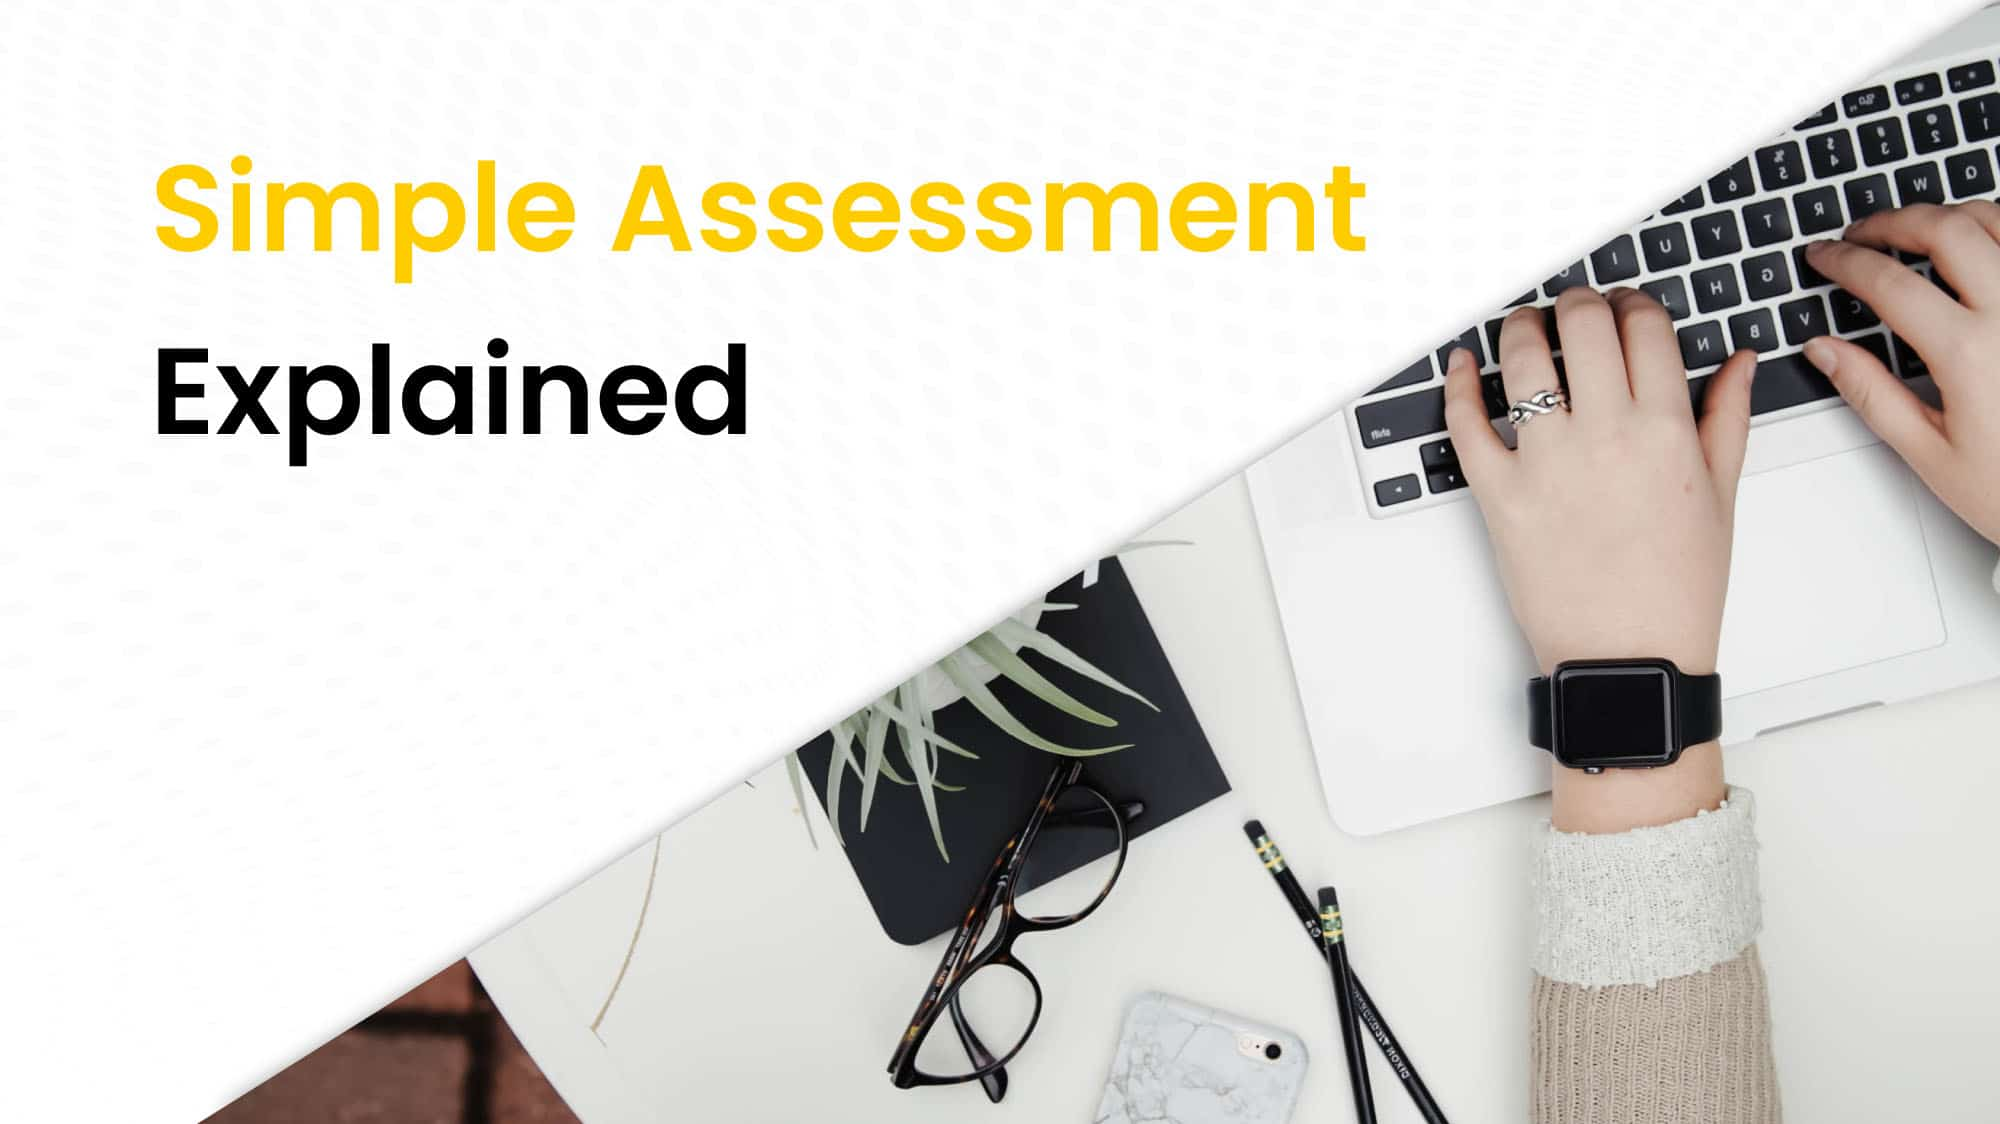 Simple assessment explained